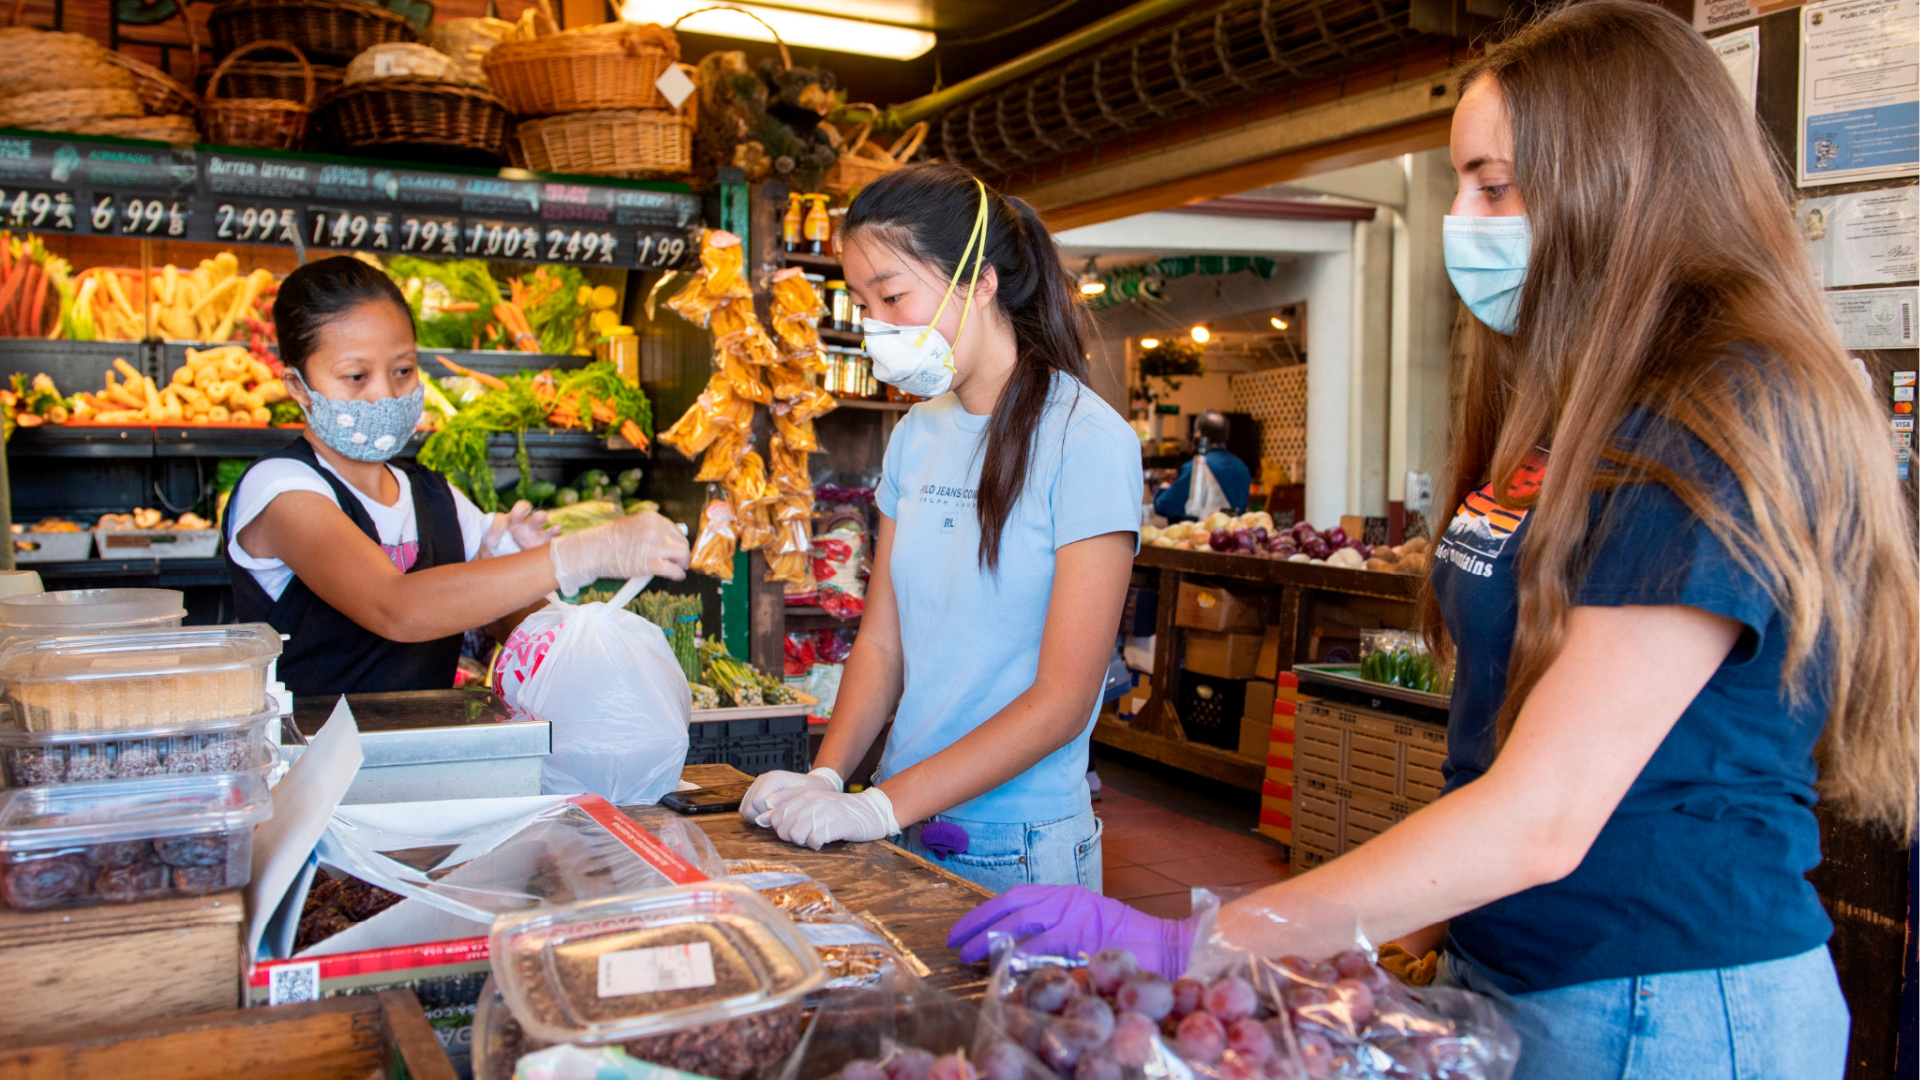 High school students shop for groceries at the Framers Market on 3rd in Los Angeles on May 20, 2020. (VALERIE MACON/AFP via Getty Images)